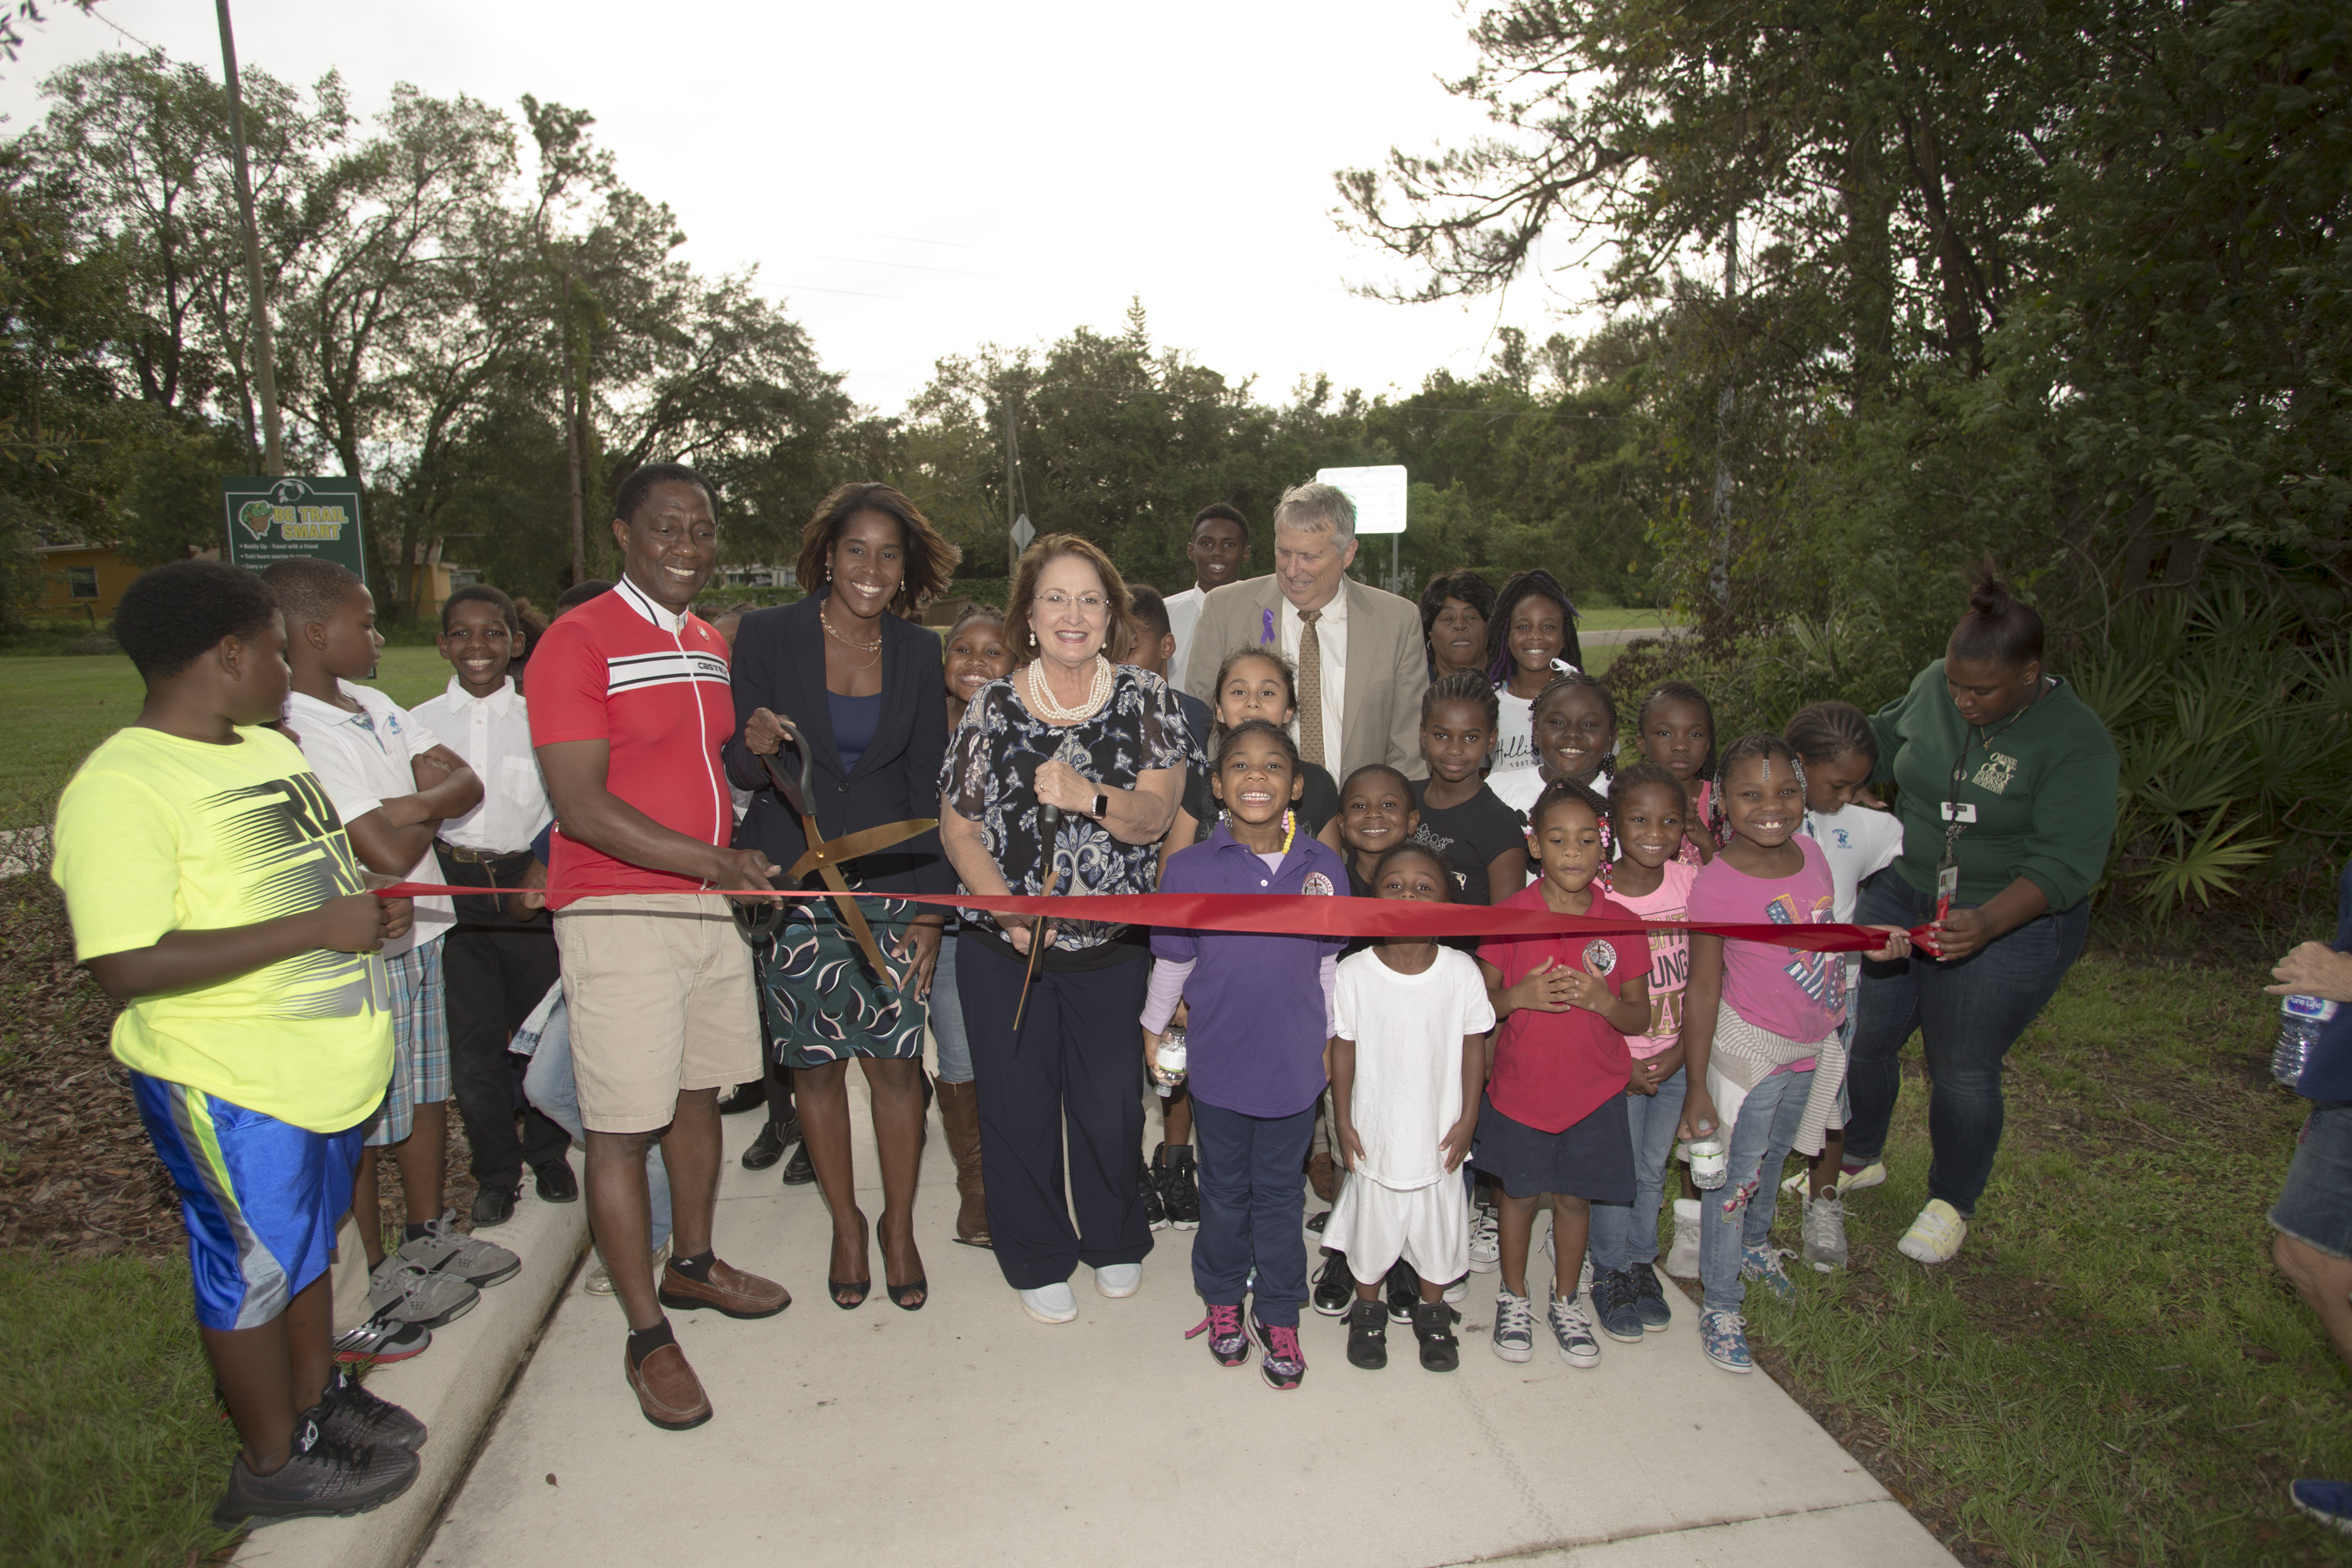 Ribbon cutting for Pine Hills trail